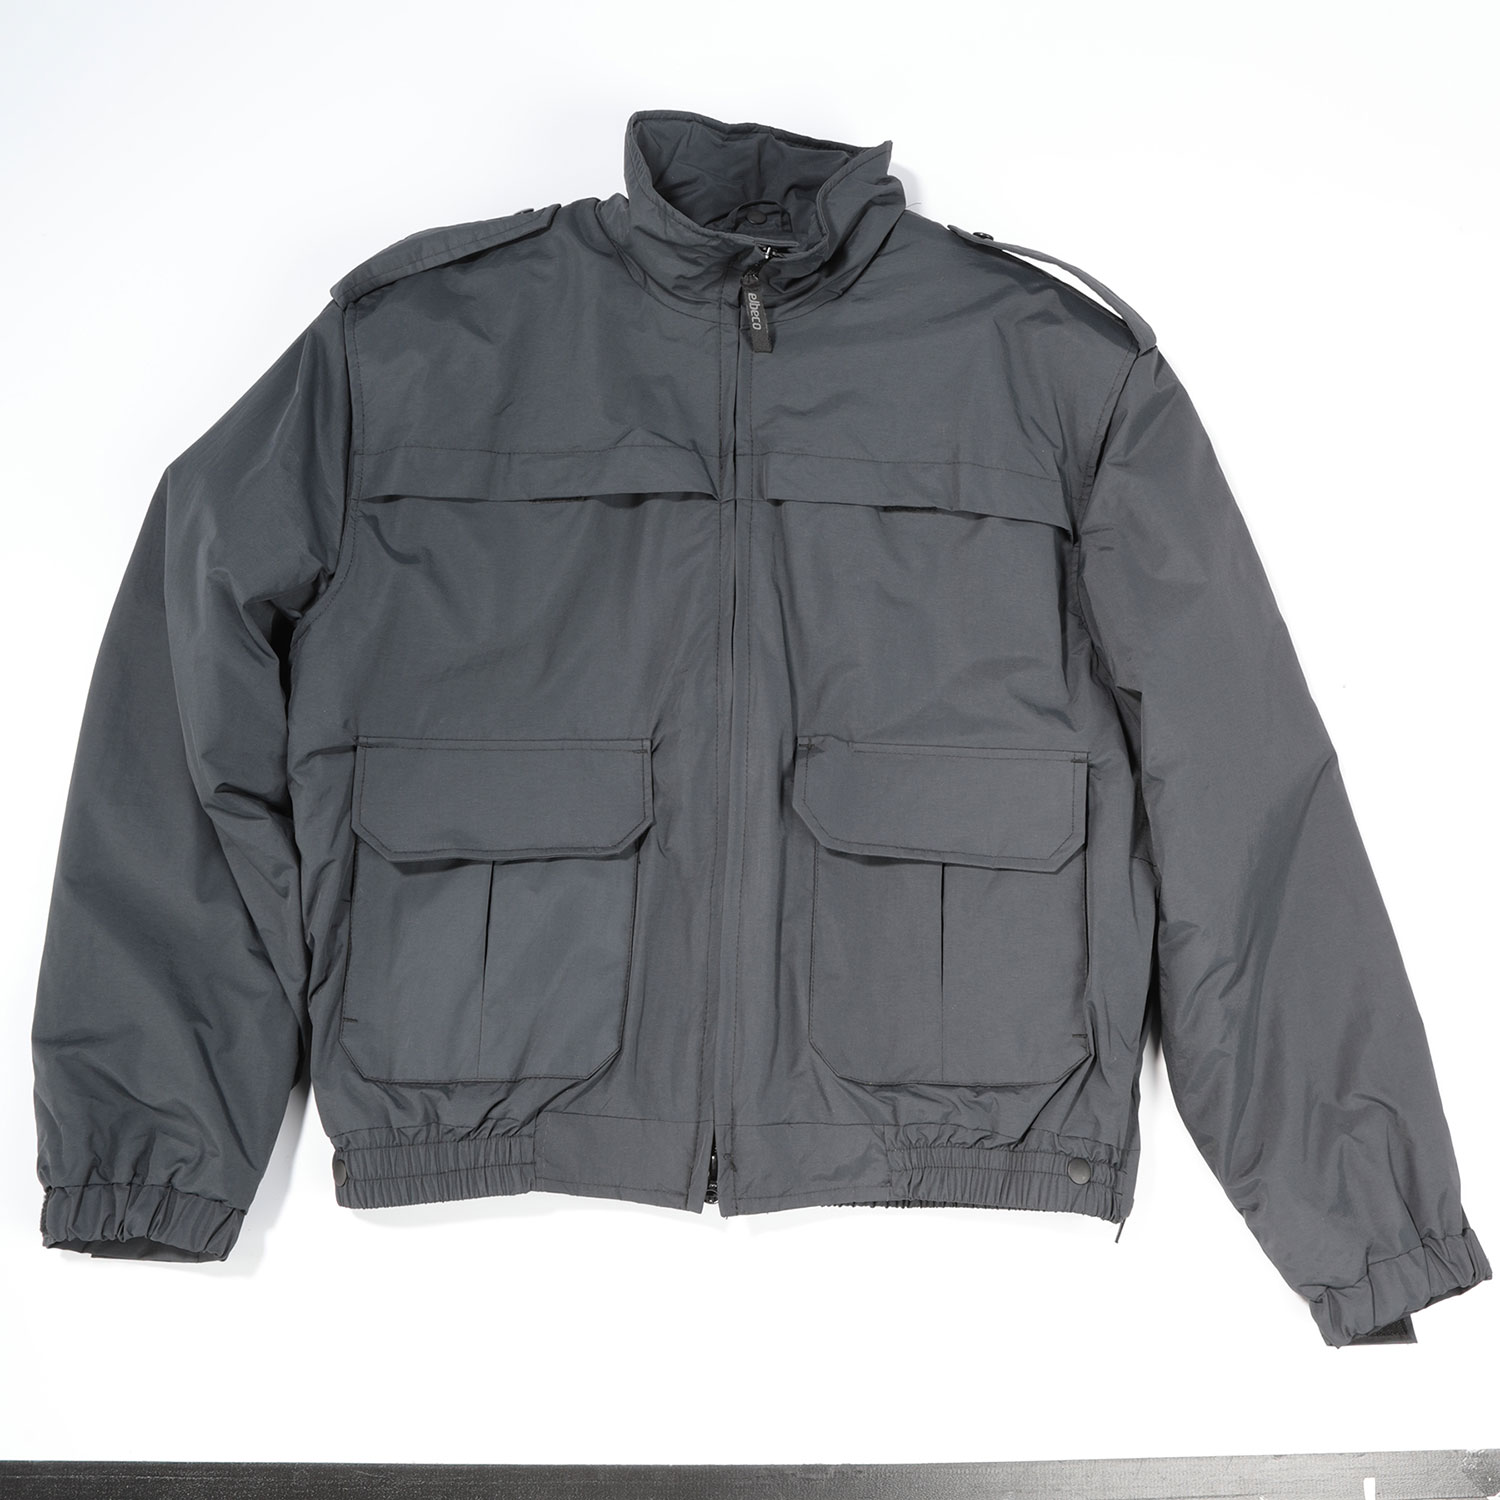 Elbeco Meridian Modular Jacket with Liner and Hood